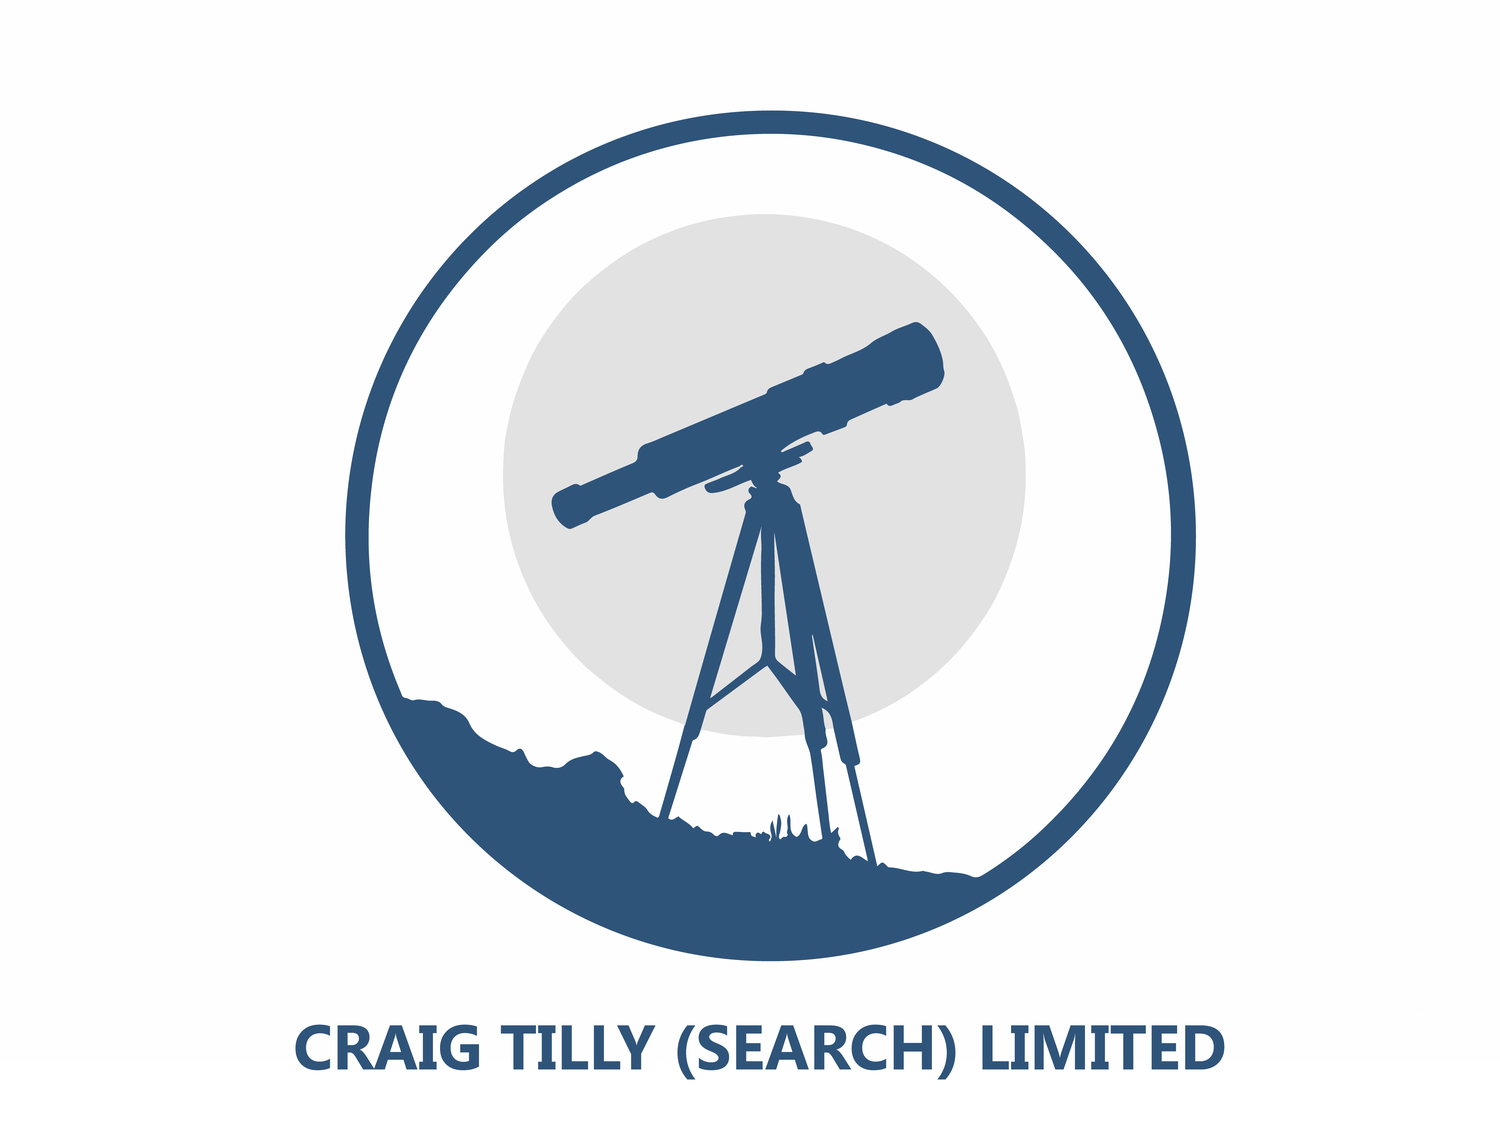 Craig Tilly Search